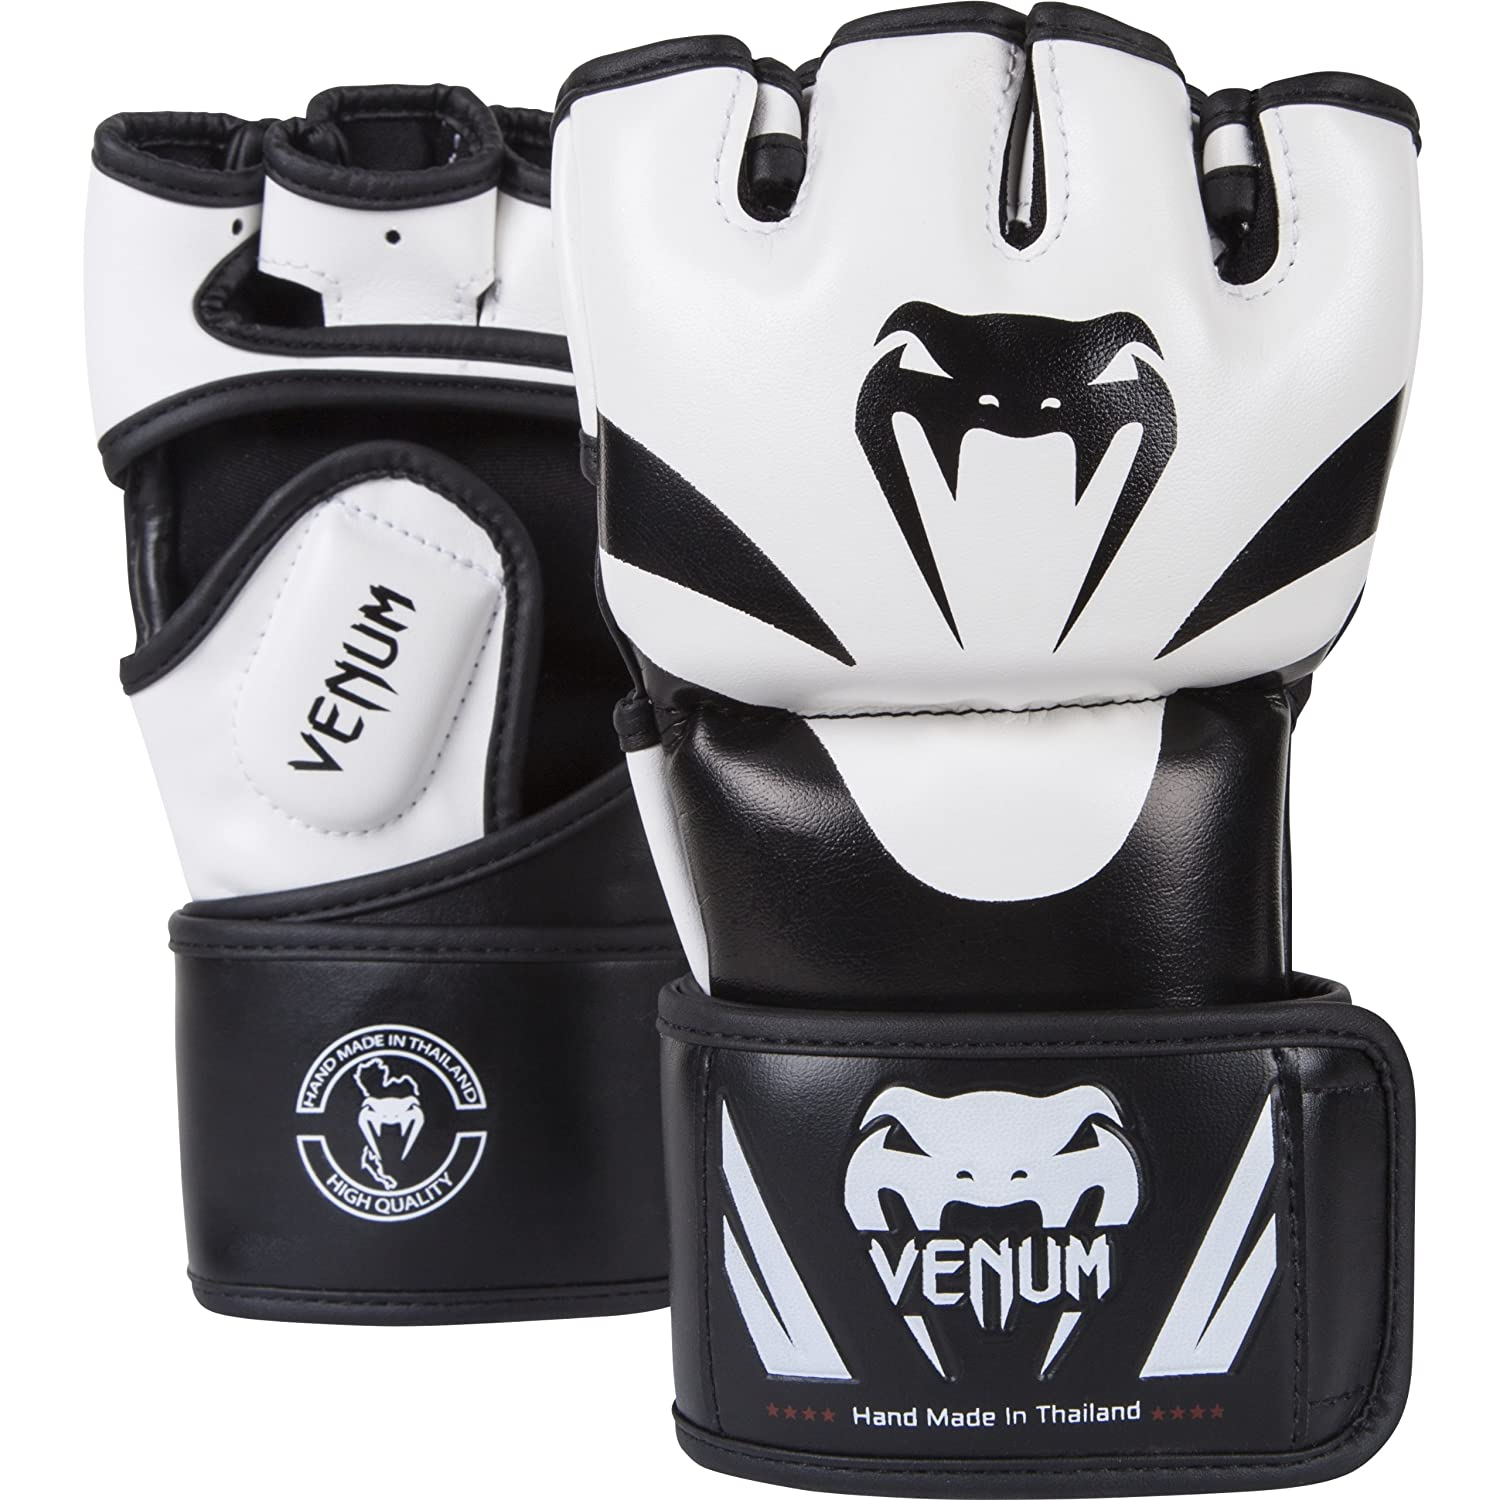 Venum 0681-L/XL Attack MMA Gloves, Black/White VENUQ